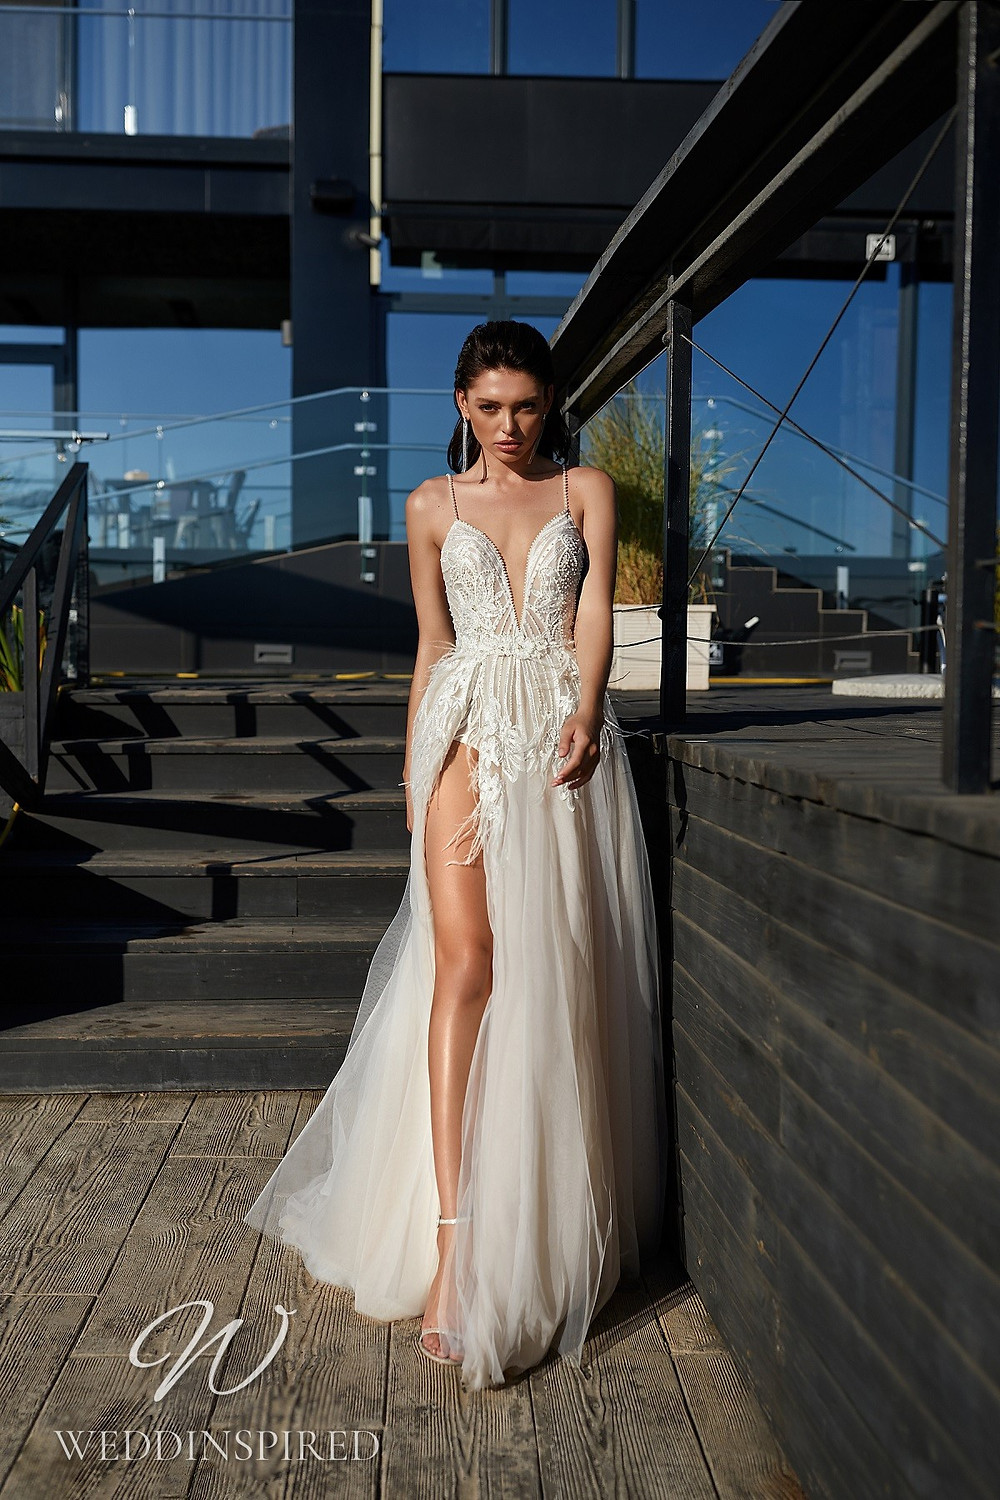 An Ida Torez 2021 tulle and lace A-line wedding dress